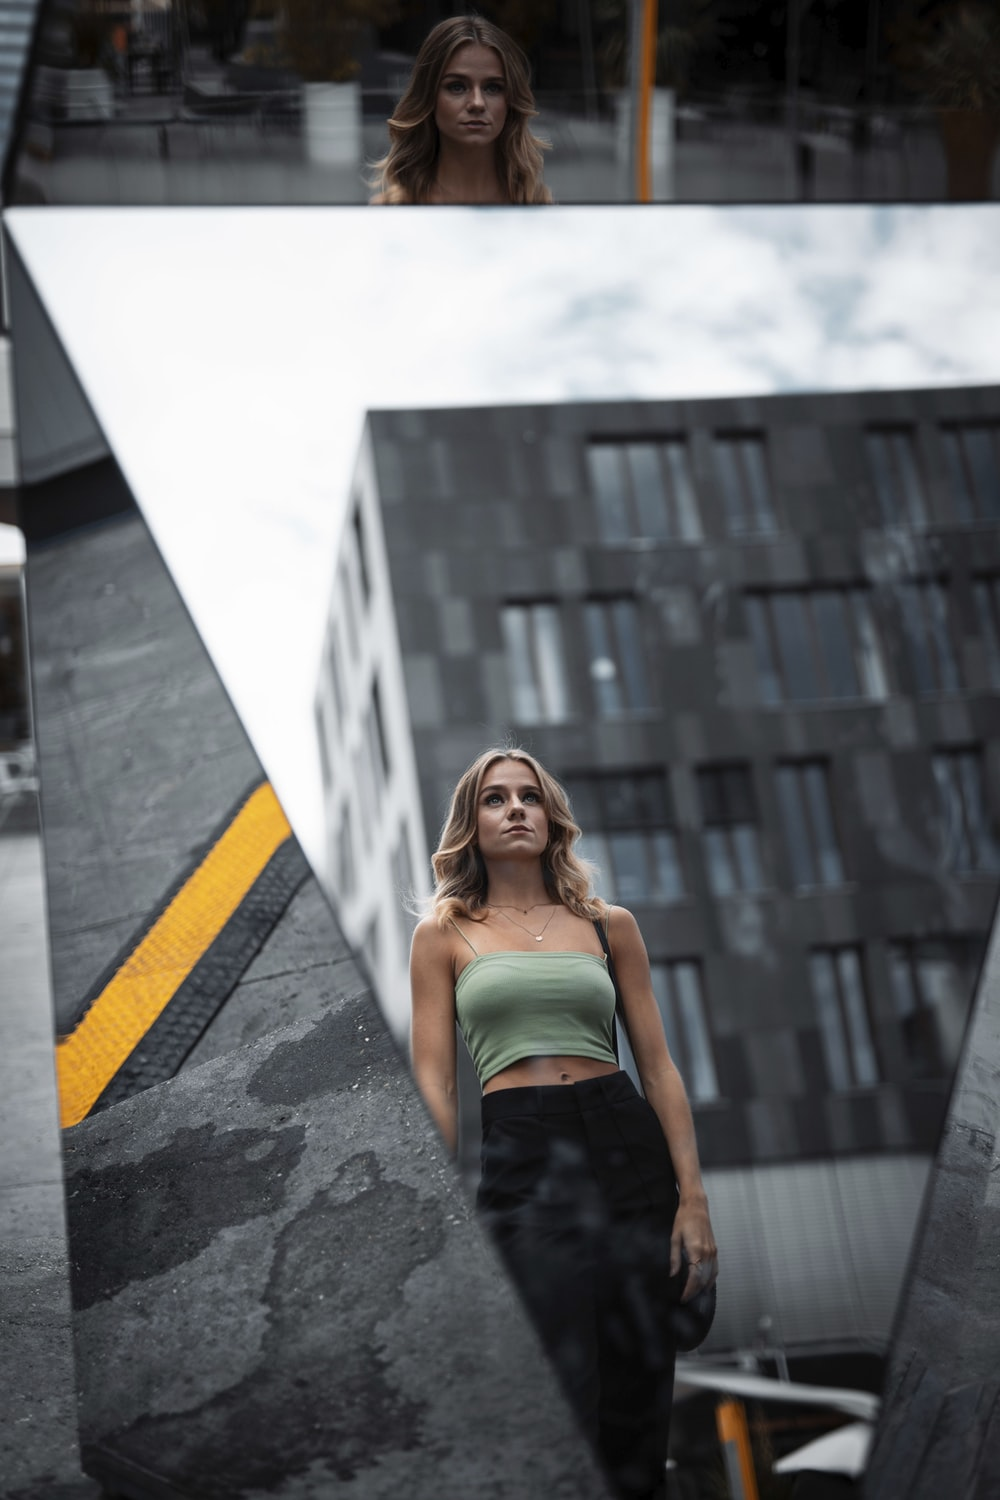 woman in green tube dress standing on gray concrete floor during daytime